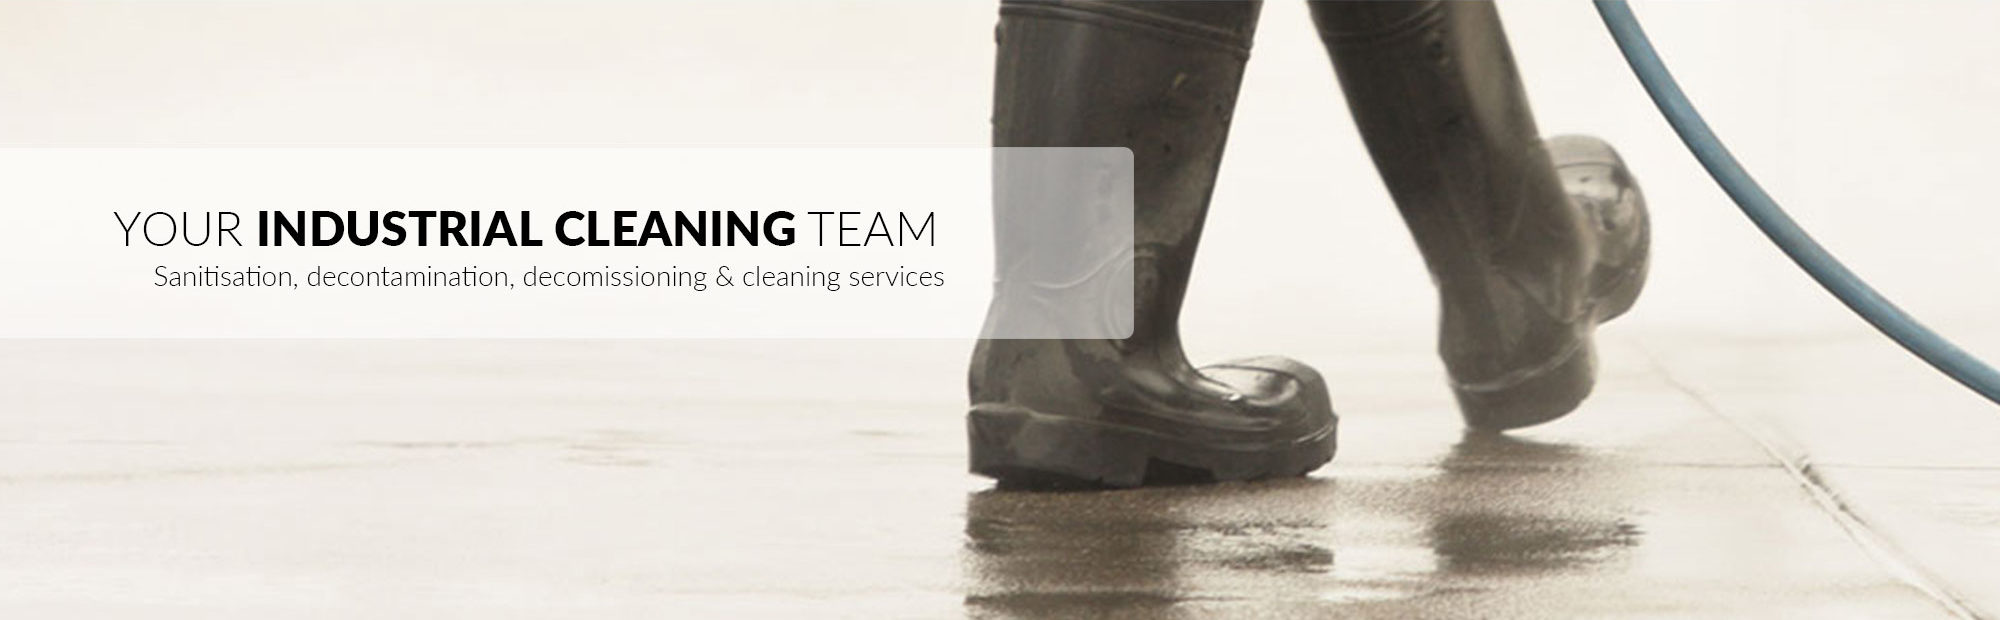 Industrial cleaning services including deep clean and sanitisation